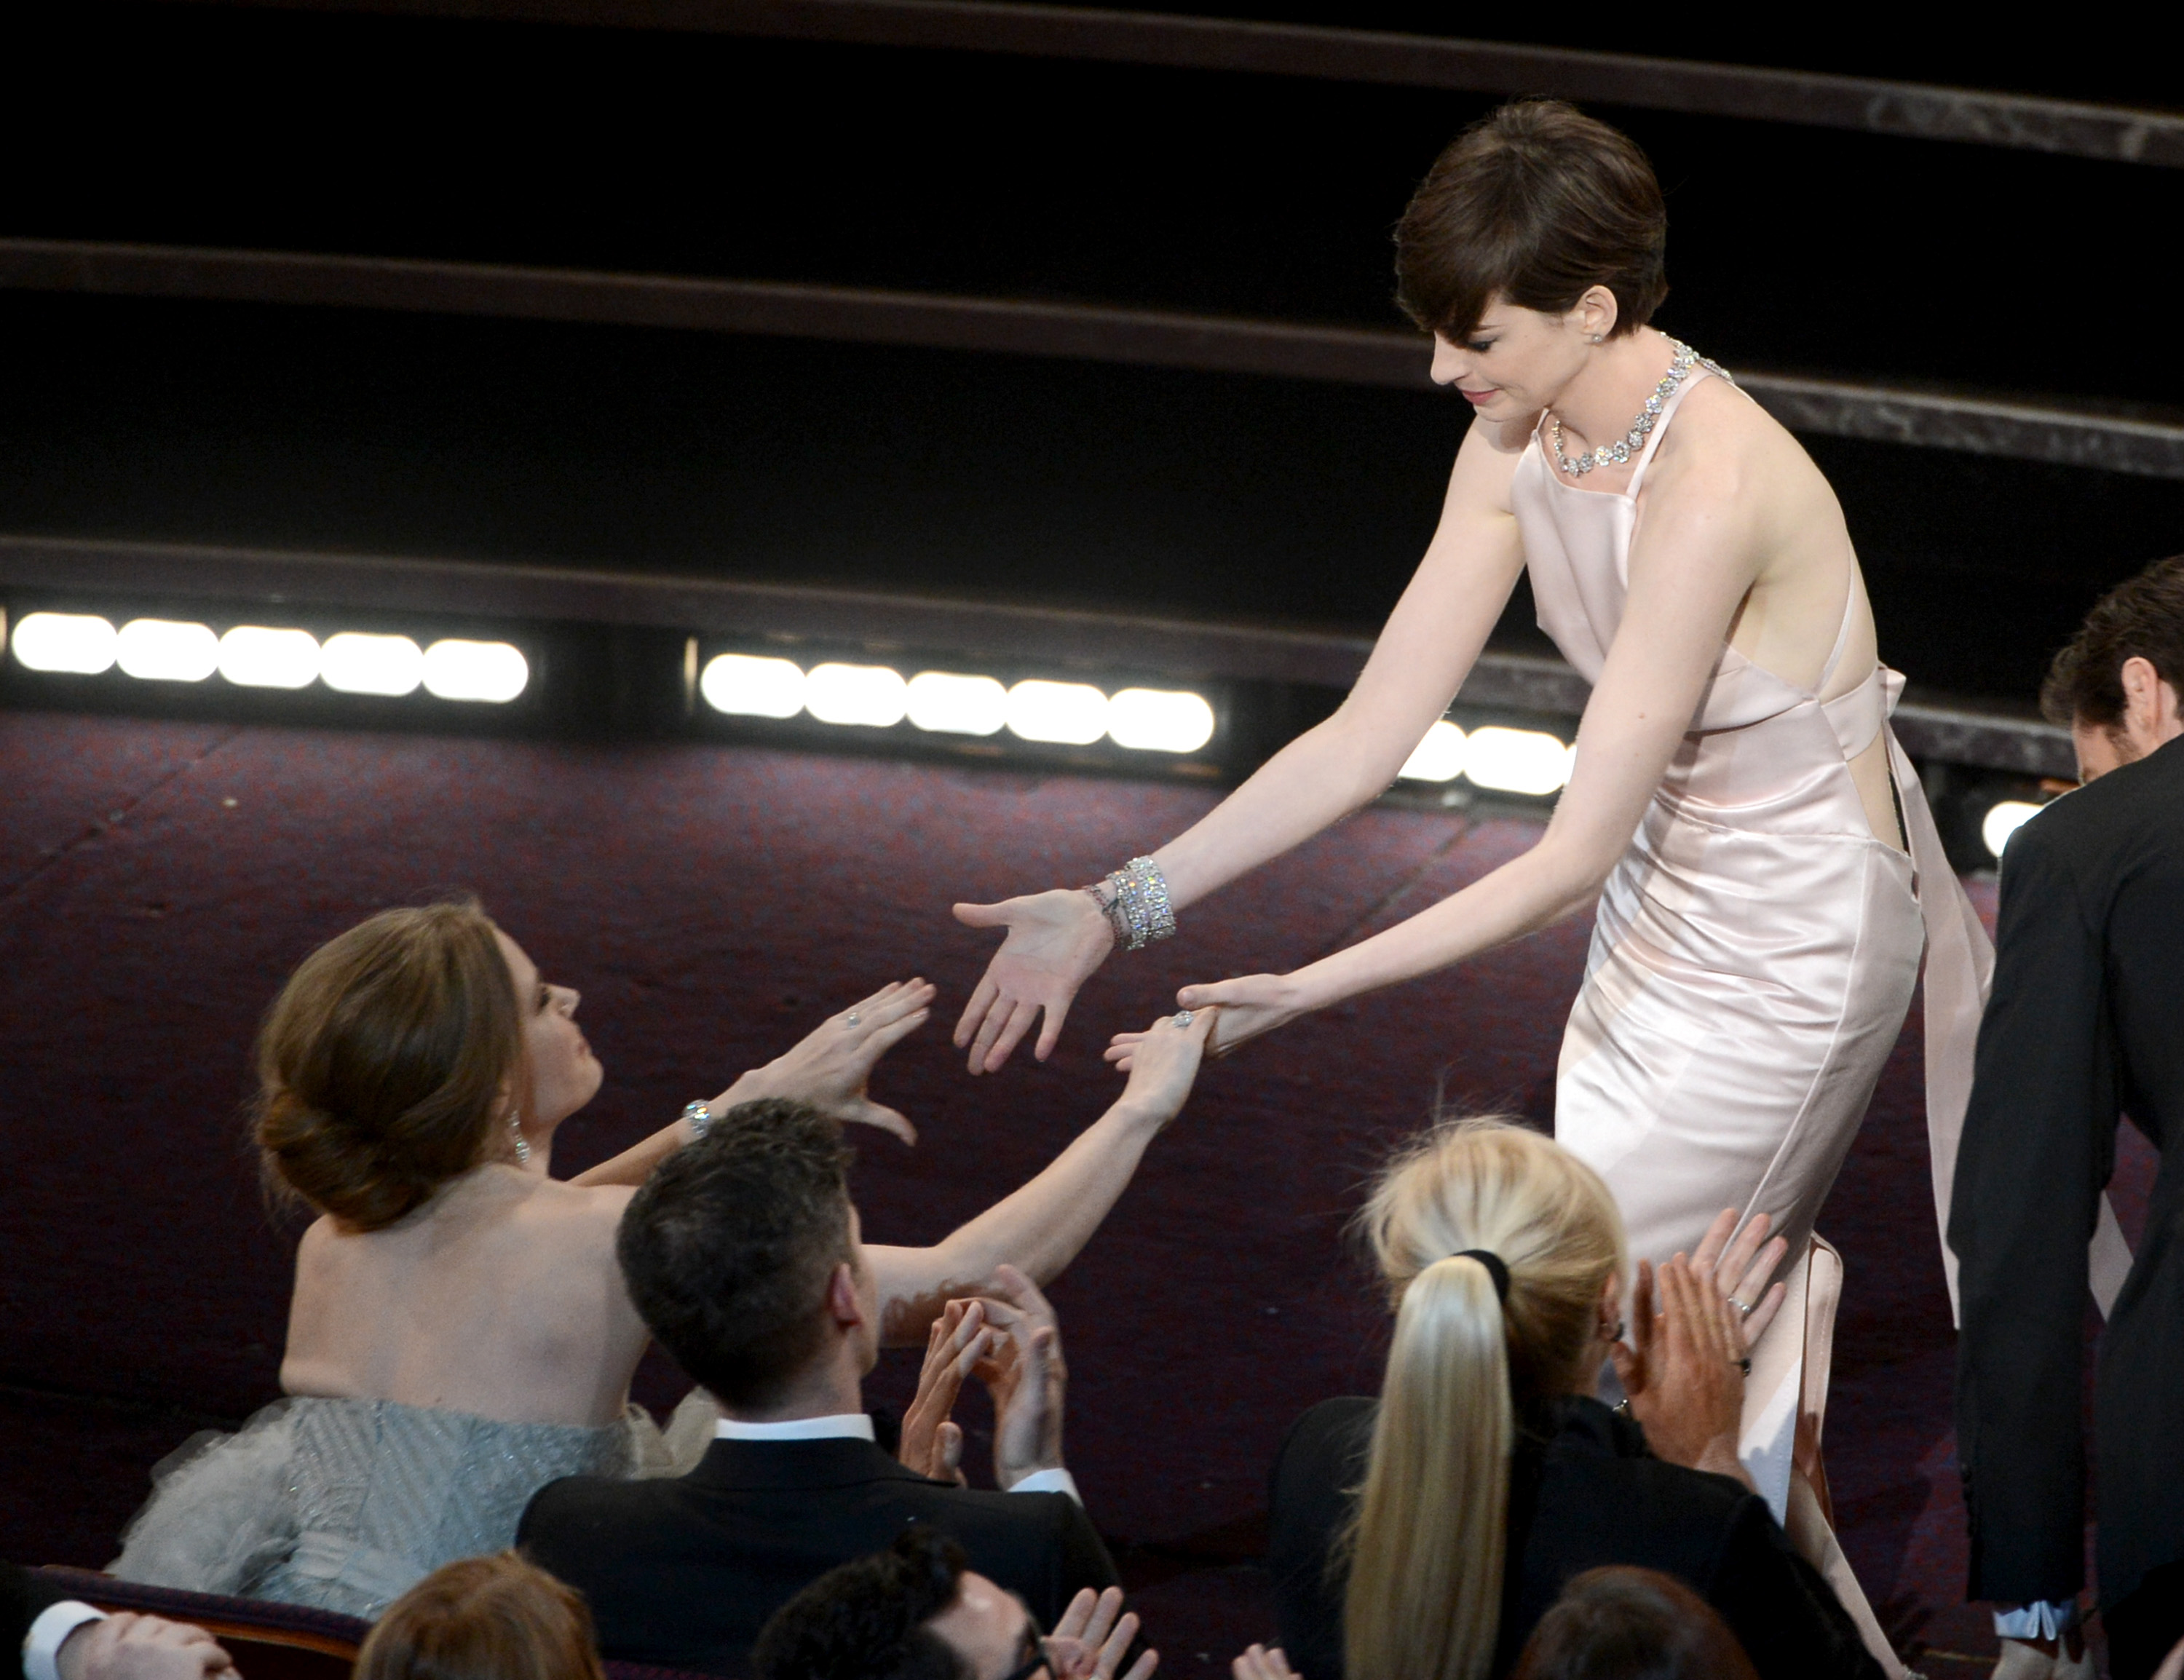 Anne Hathaway and Amy Adams greeted each other.